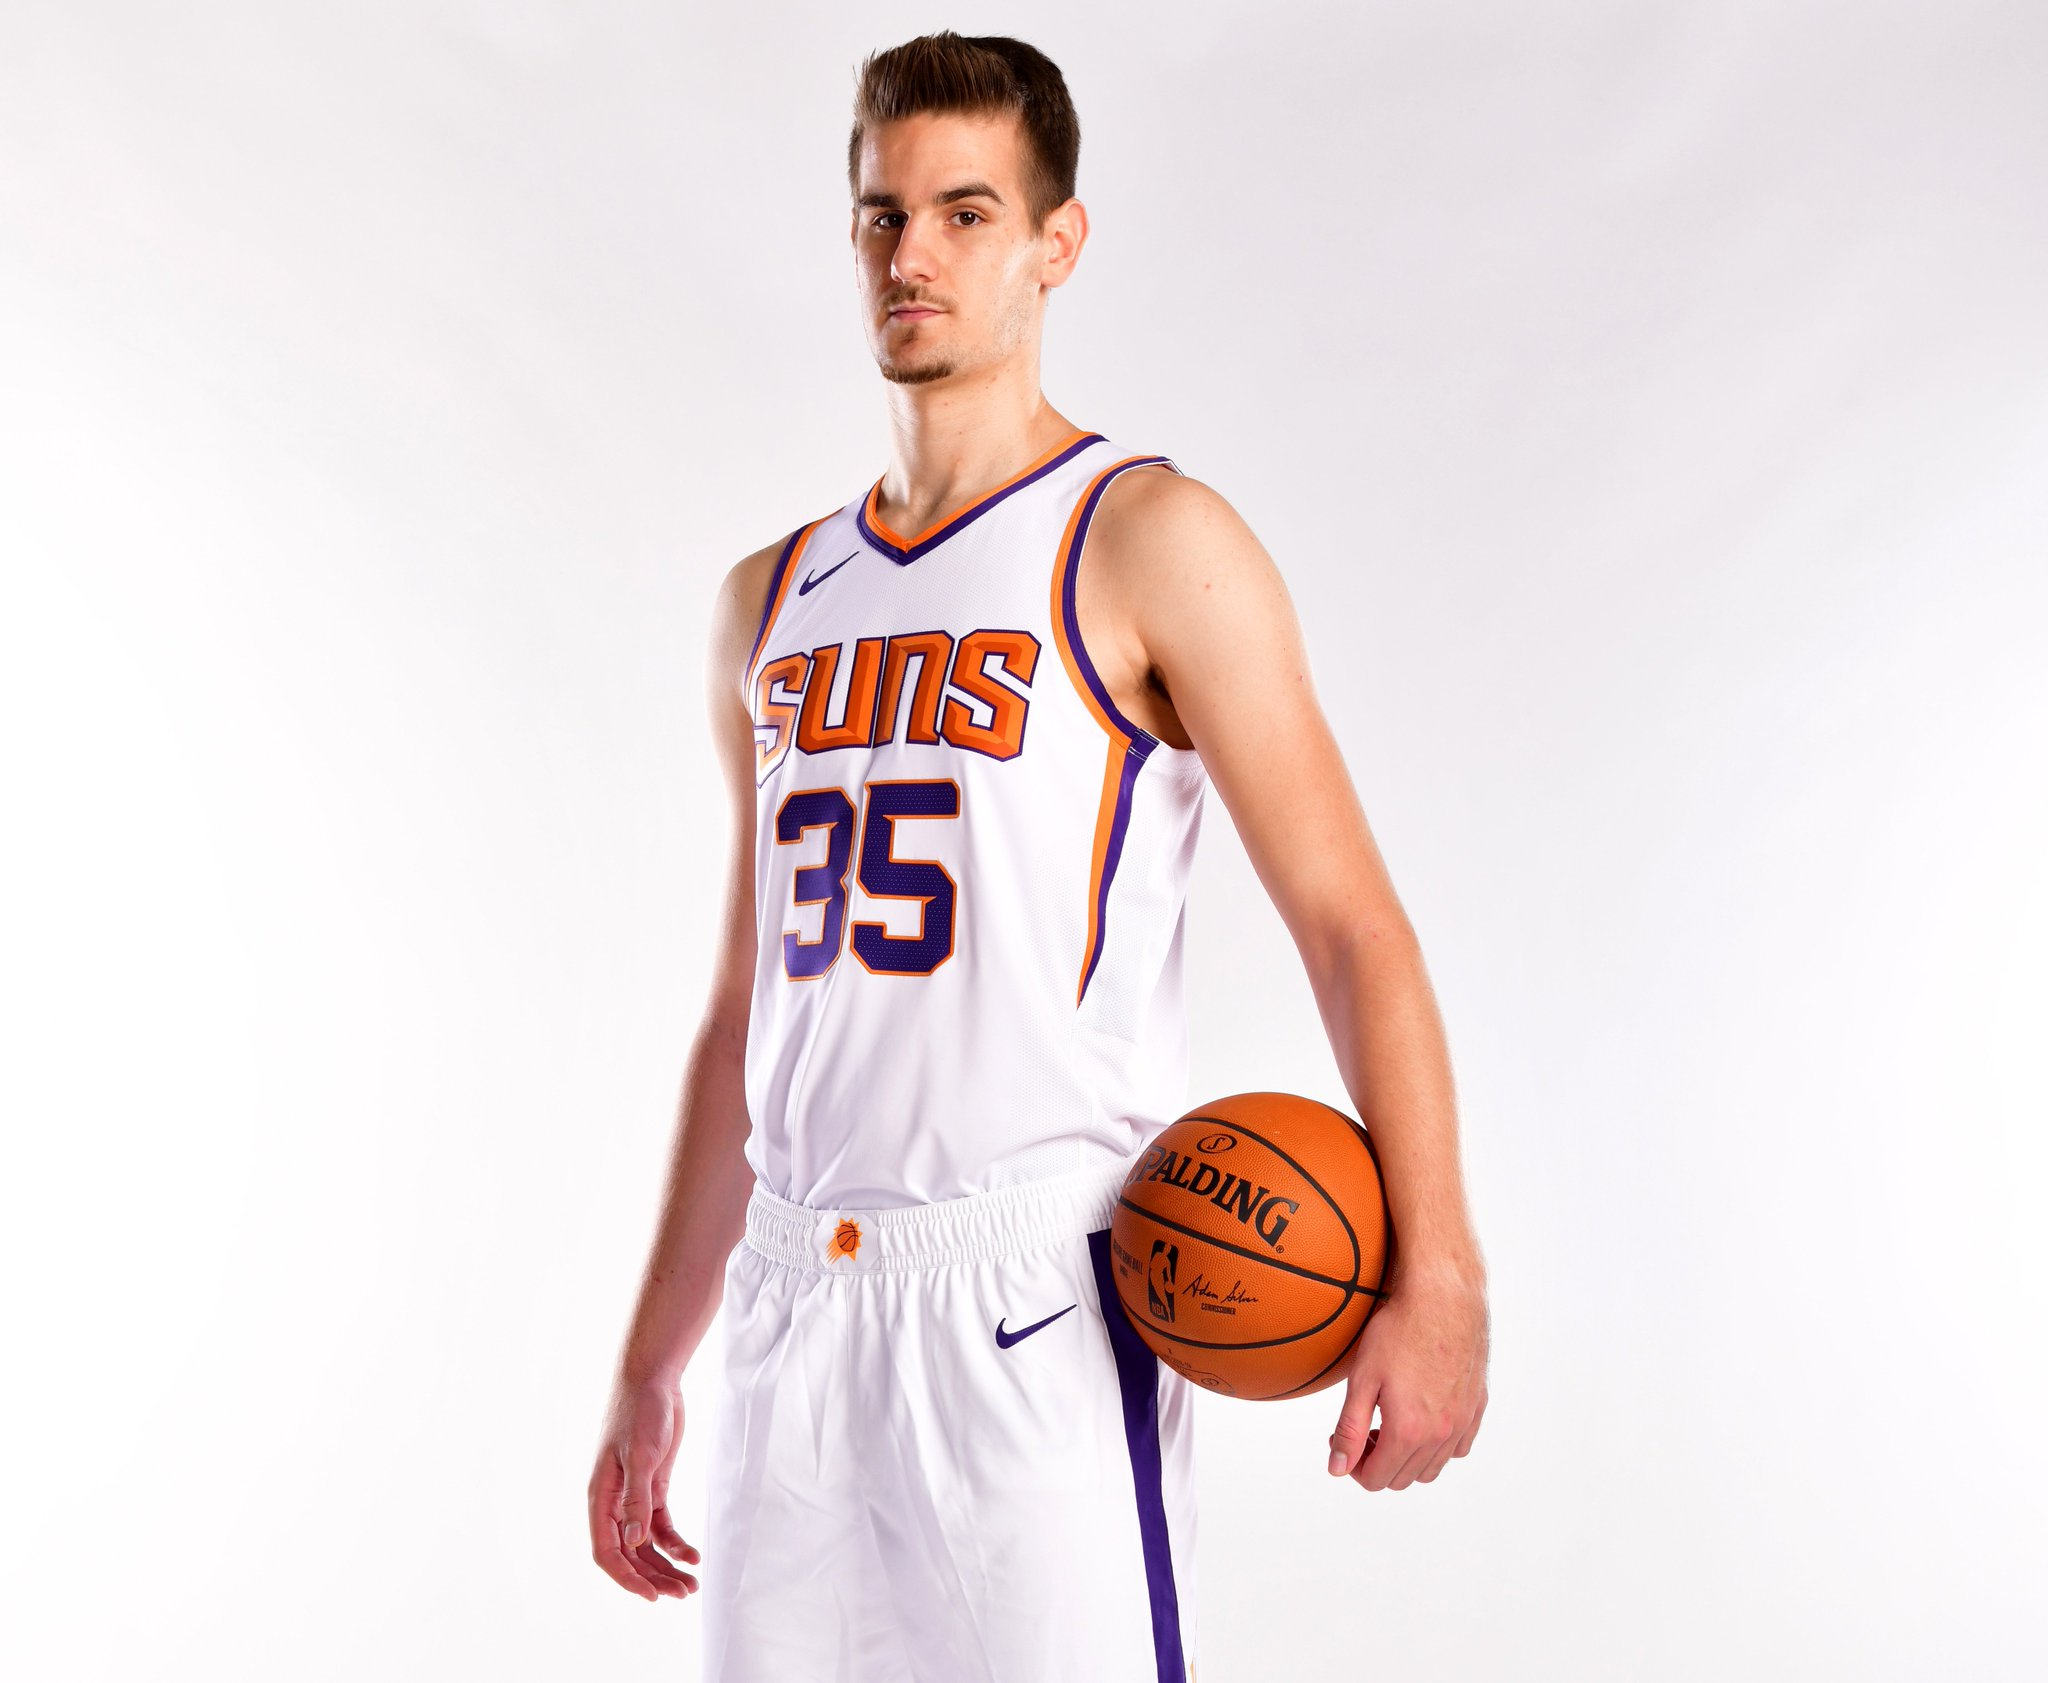 Join us in wishing @DBender03 of the @Suns a HAPPY 21st BIRTHDAY!   #NBABDAY #TimeToRise https://t.co/Z33WZdP0JS